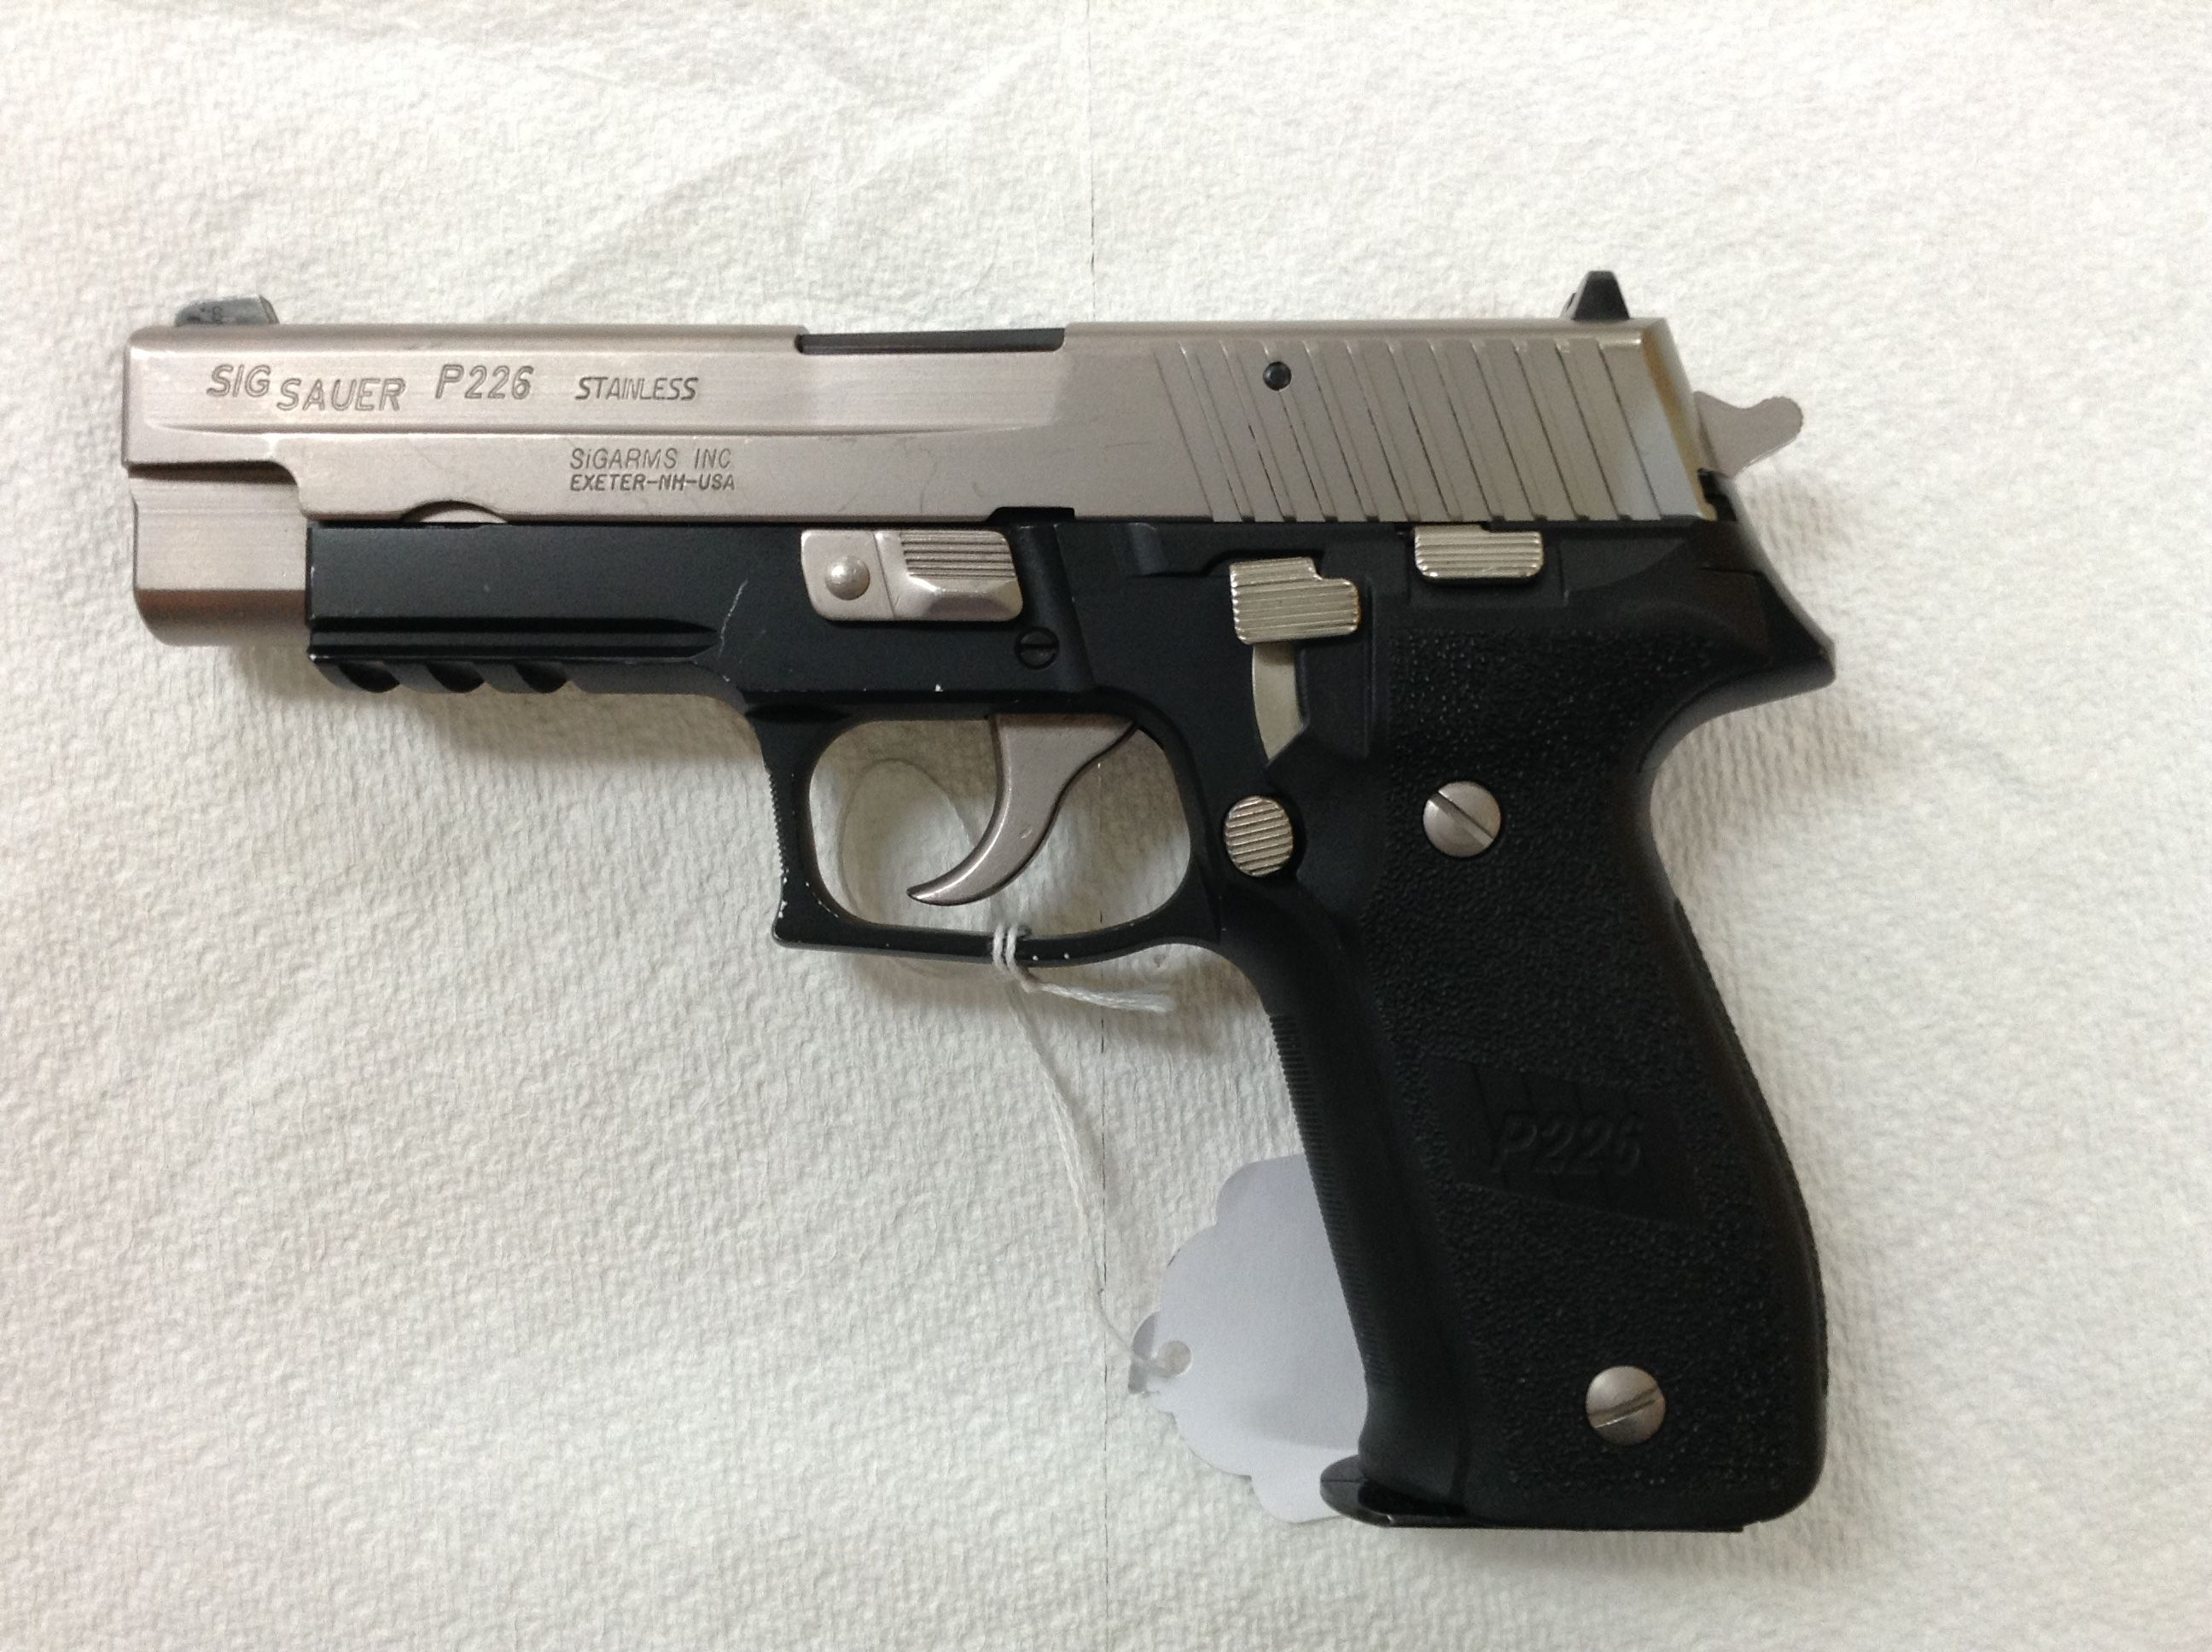 sig sauer p226 stainless 40 cal with one mag g i 4303 585 out the